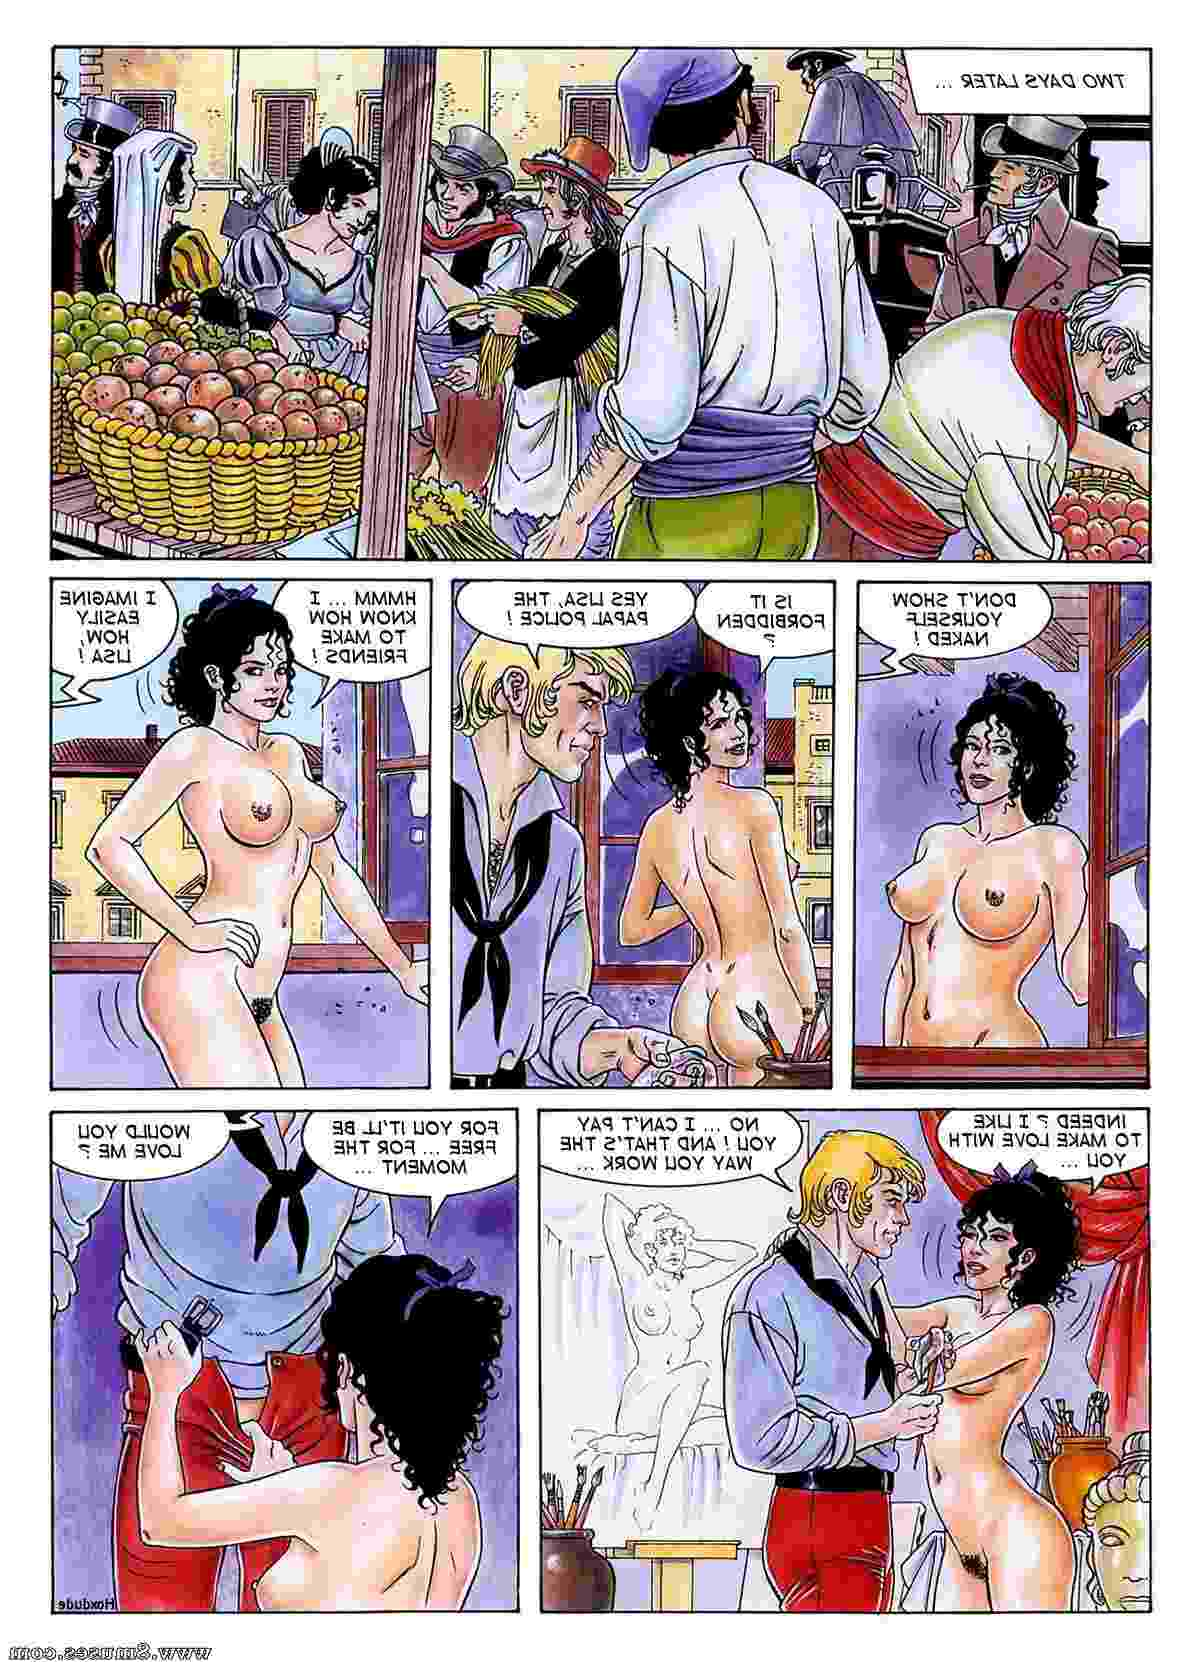 Stramaglia-Morale-Comics/Lisa-Fatal-Beauty Lisa_Fatal_Beauty__8muses_-_Sex_and_Porn_Comics_22.jpg